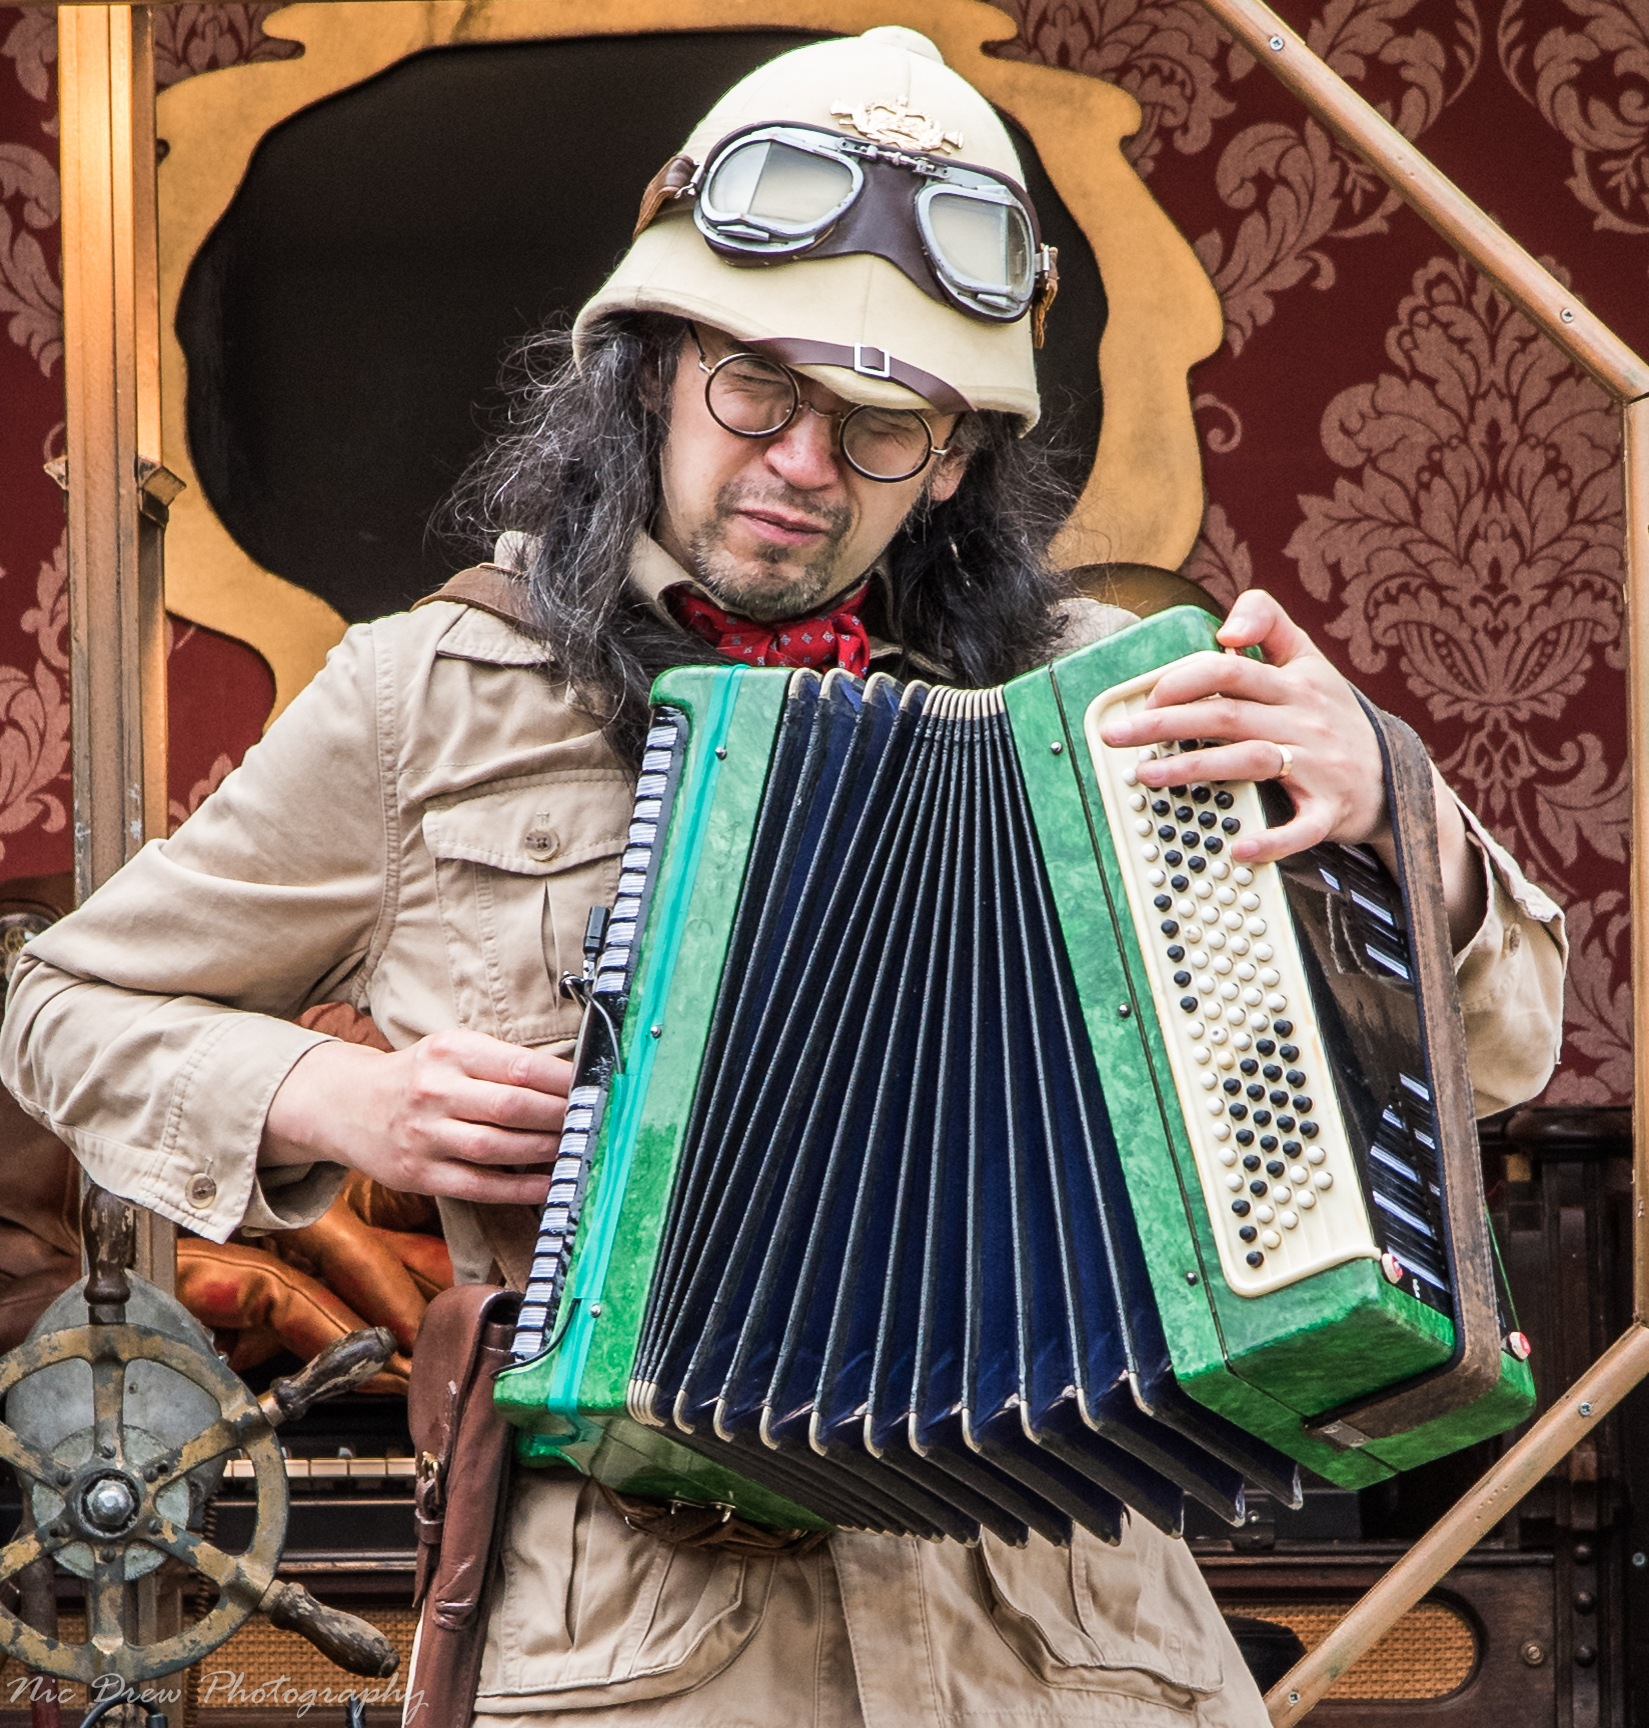 The squeeze box player by Nic Drew